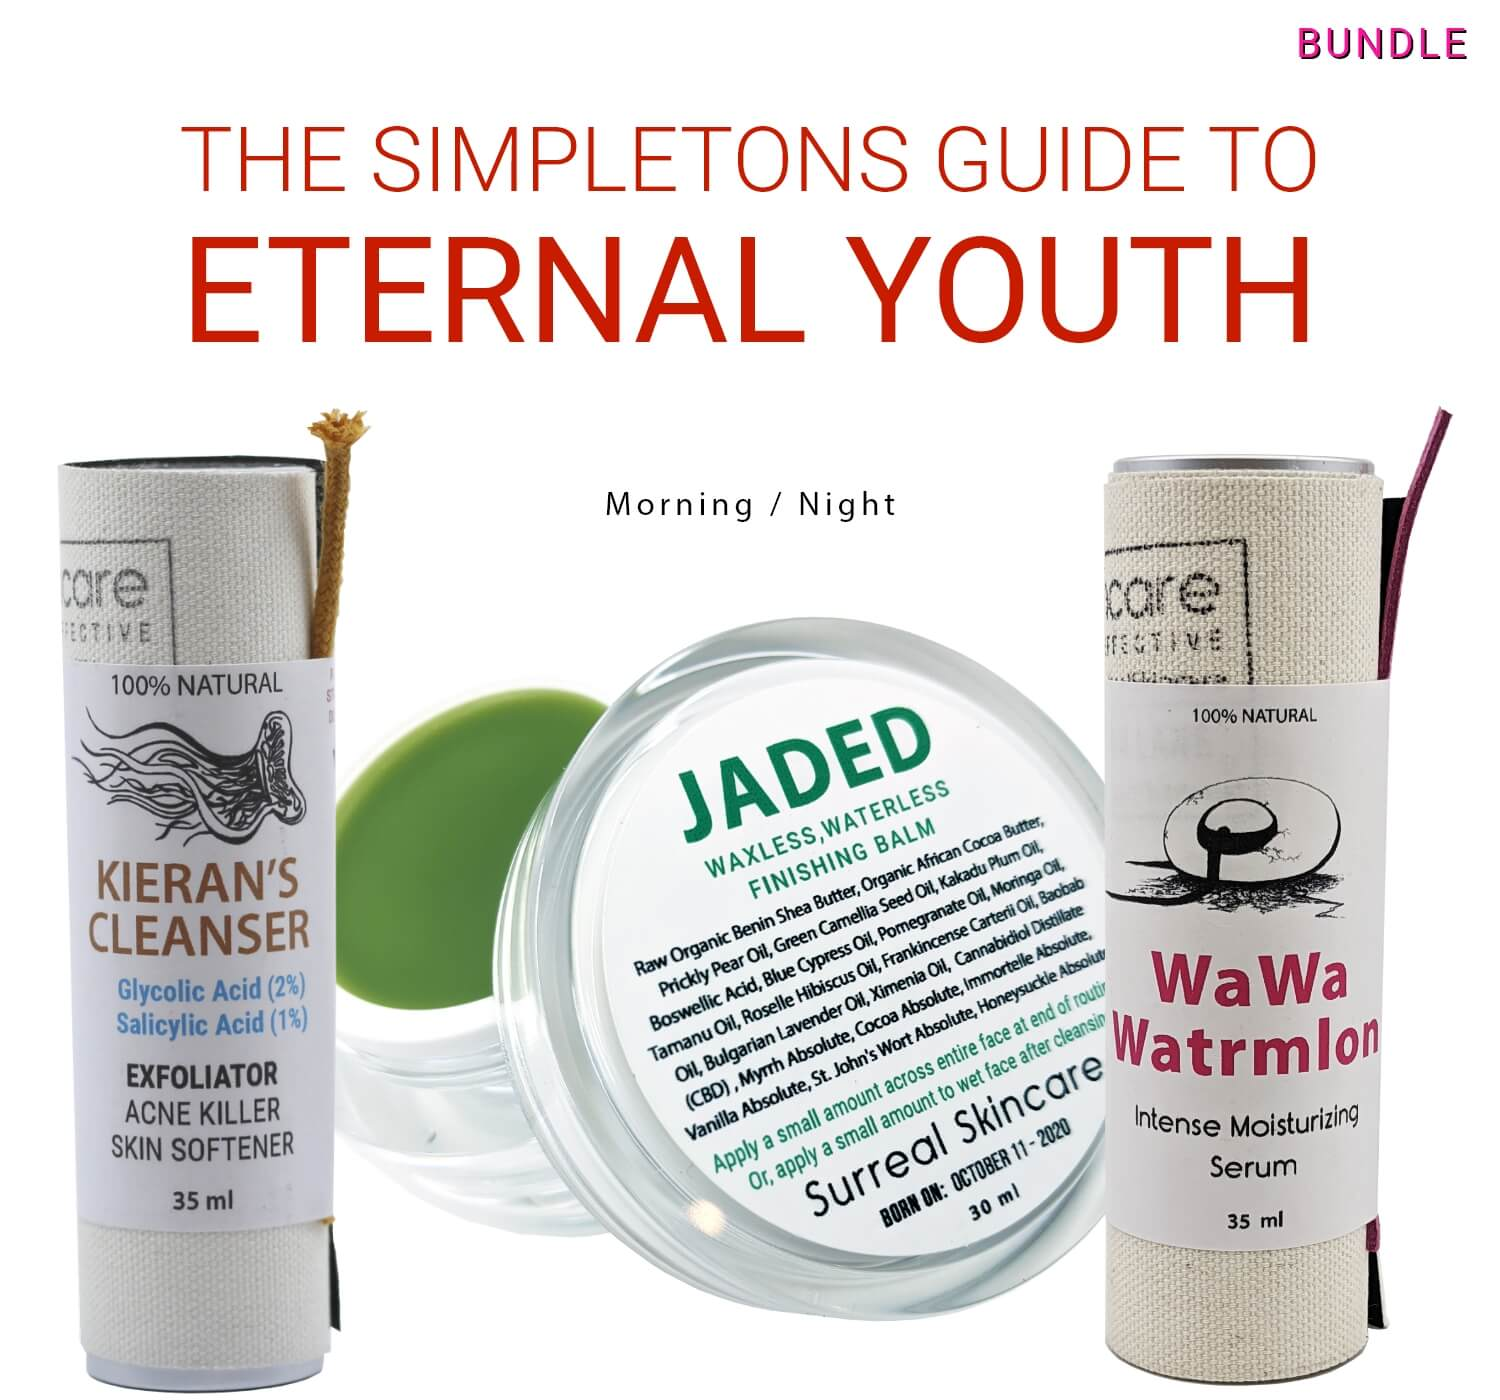 The Simpletons Guide To Eternal Youth - Bundle/Routine